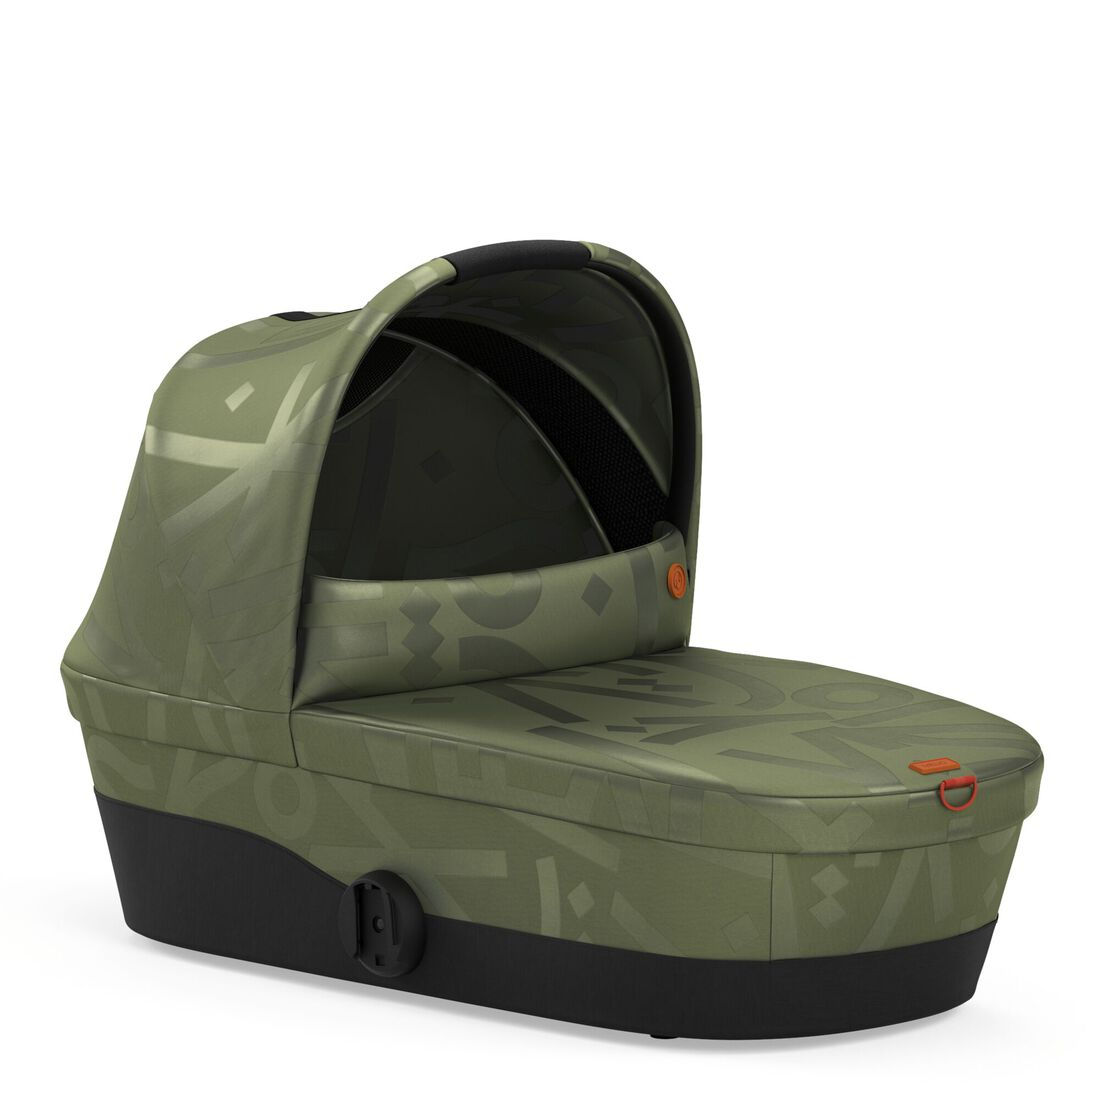 CYBEX Melio Cot - Olive Green in Olive Green large image number 1